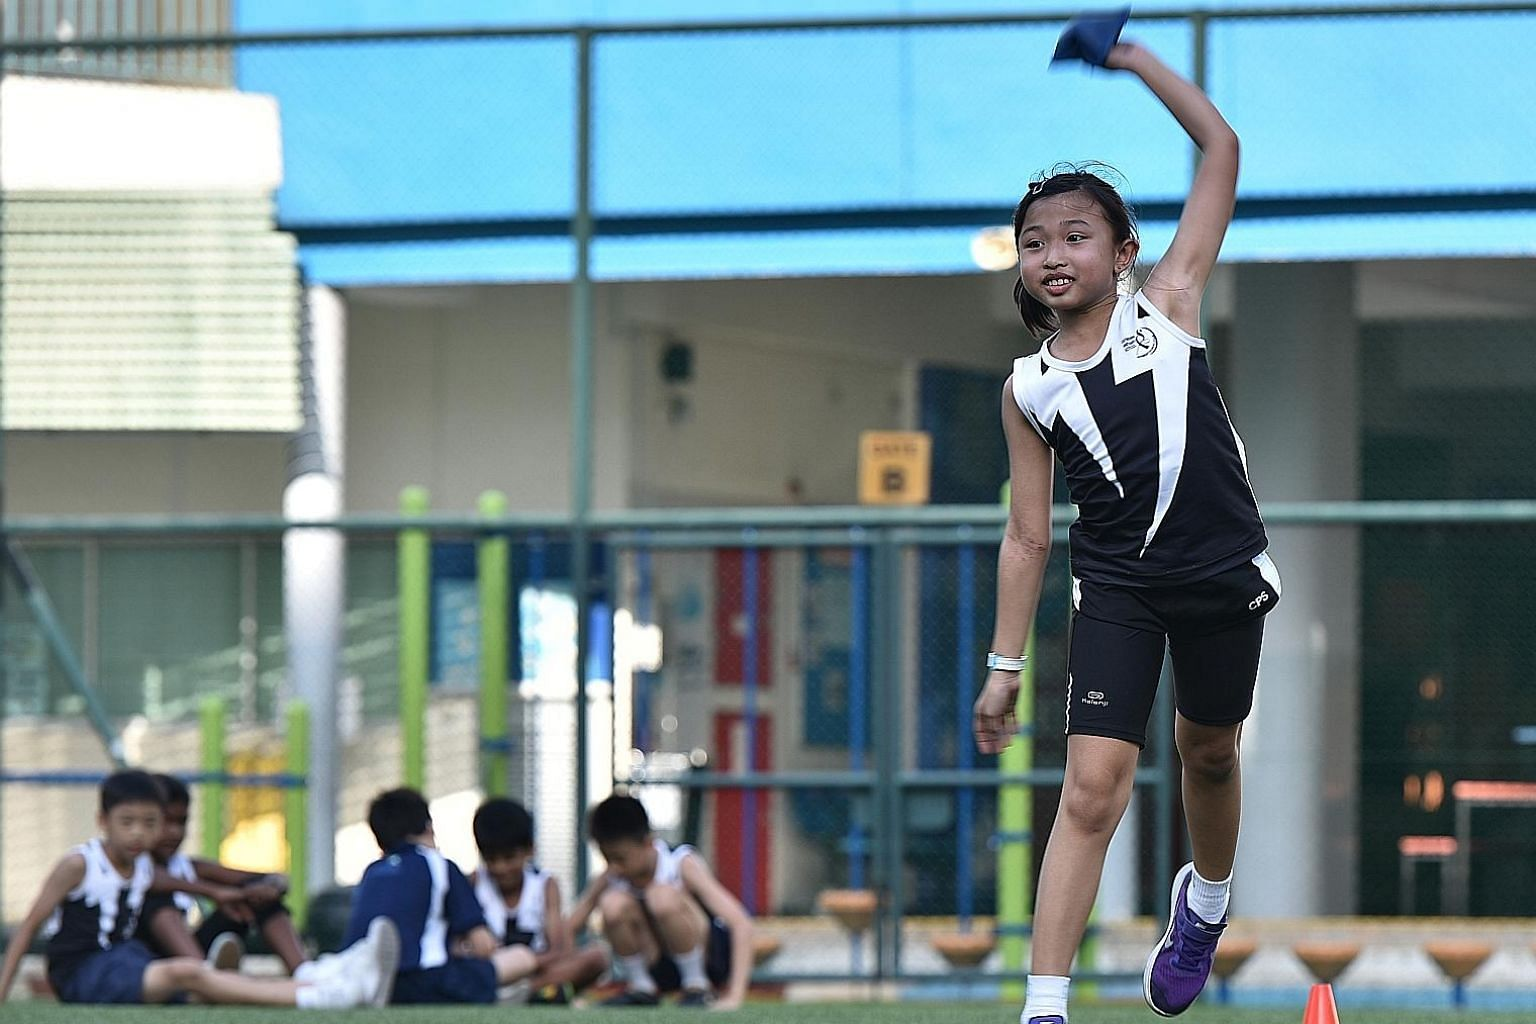 Last month, the Education Ministry announced revisions to 21 sports in the National School Games Junior Division by 2021, to give children, even the less skilled, a chance to take part in the national games. In track and field, for instance, individu